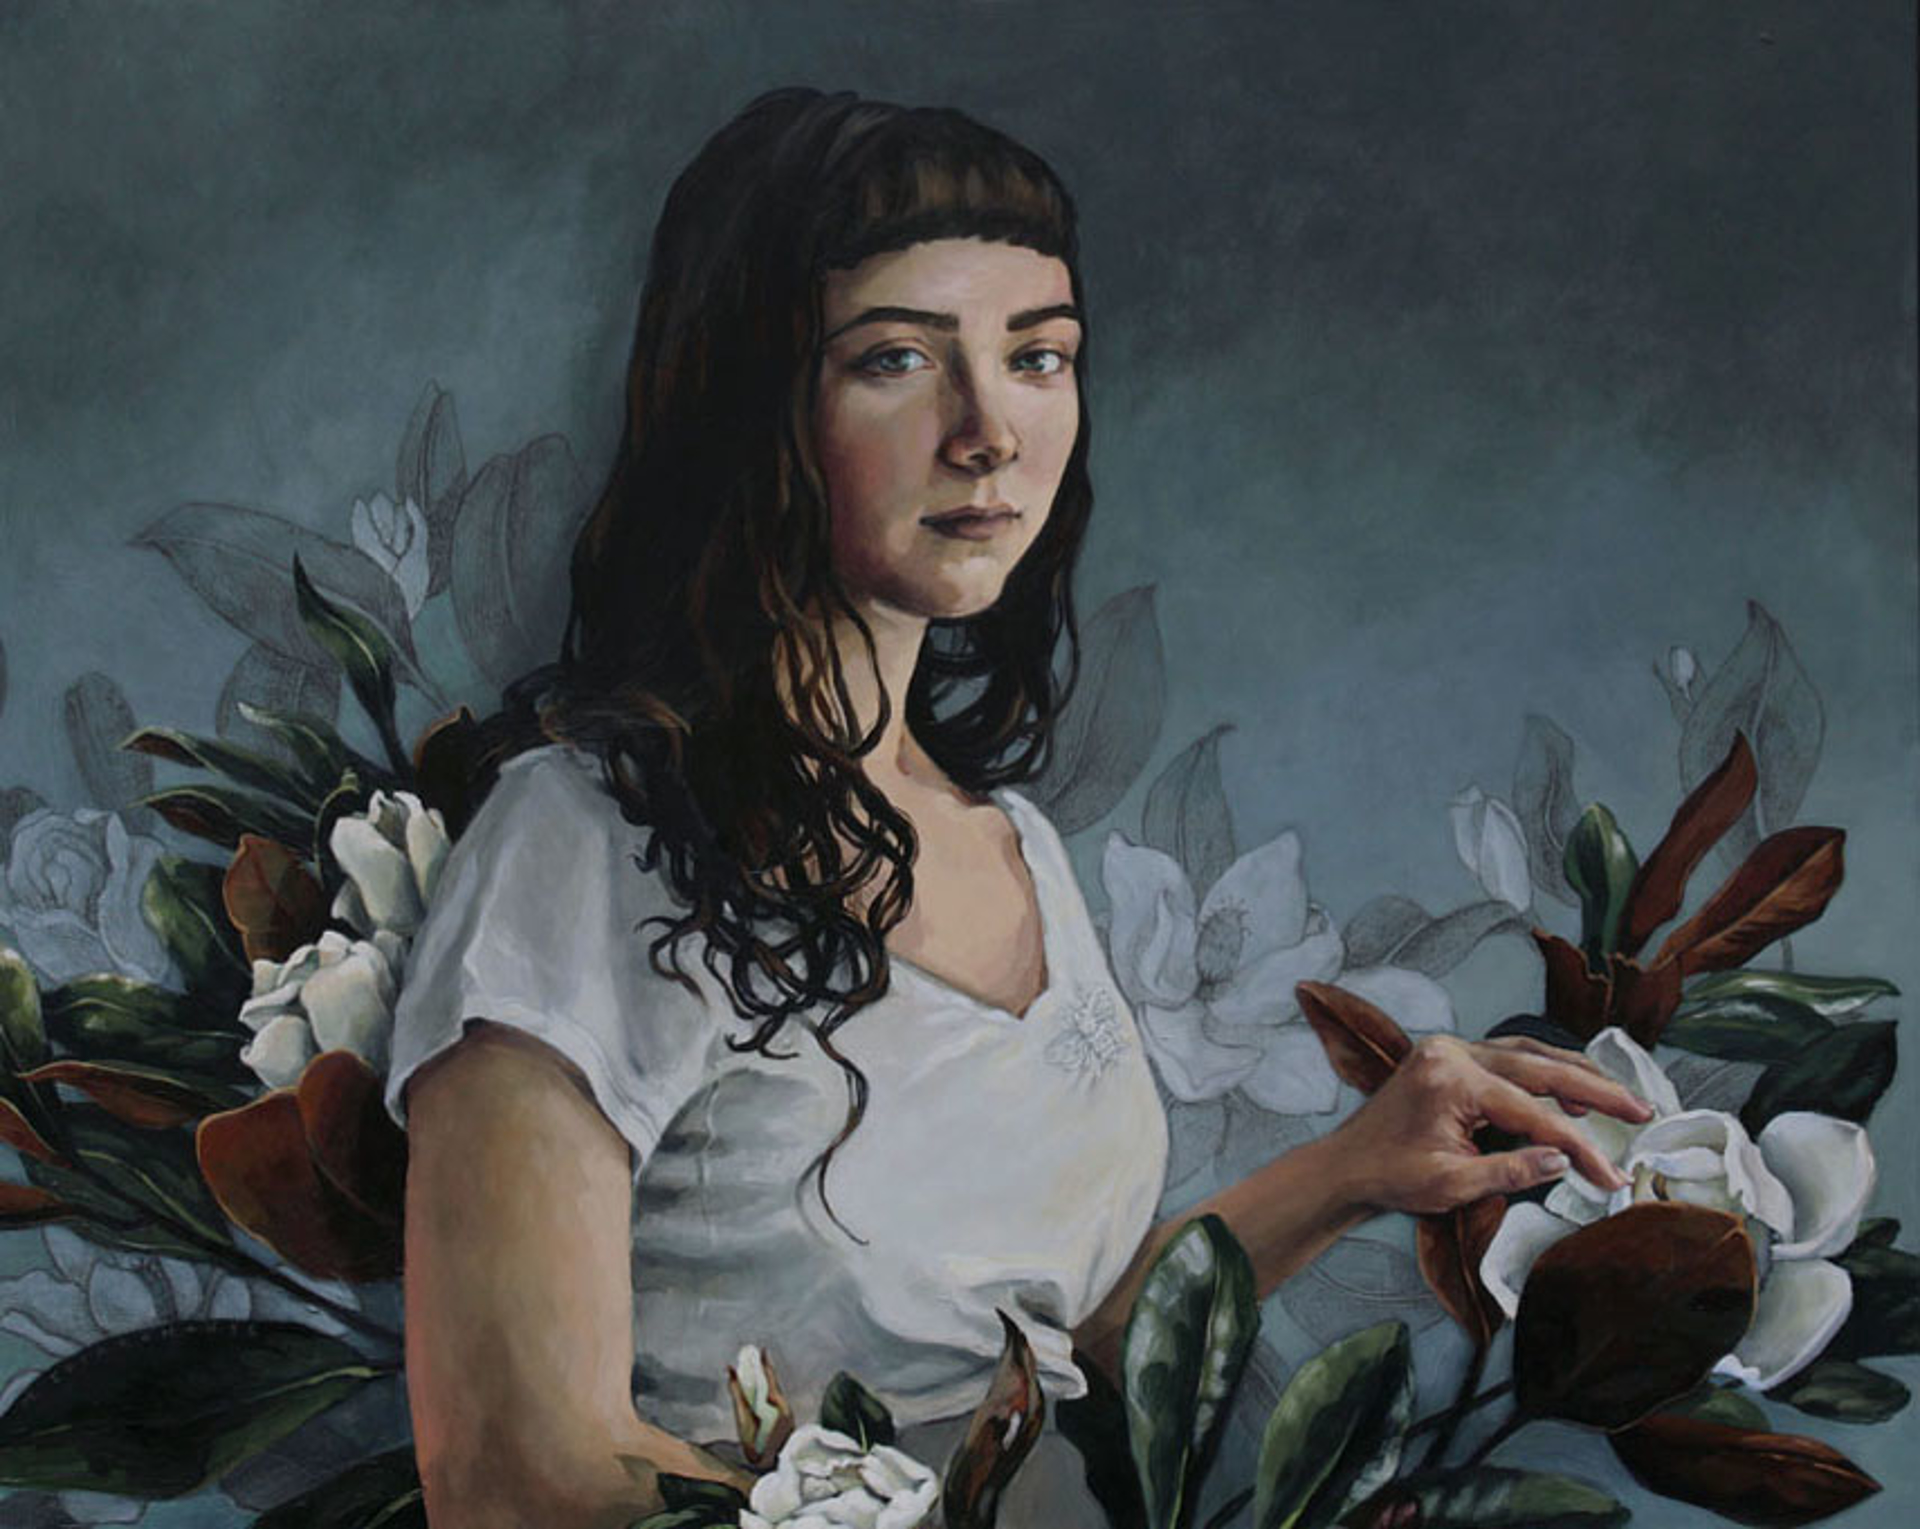 Sweet is the Sting by Mary Chiaramonte